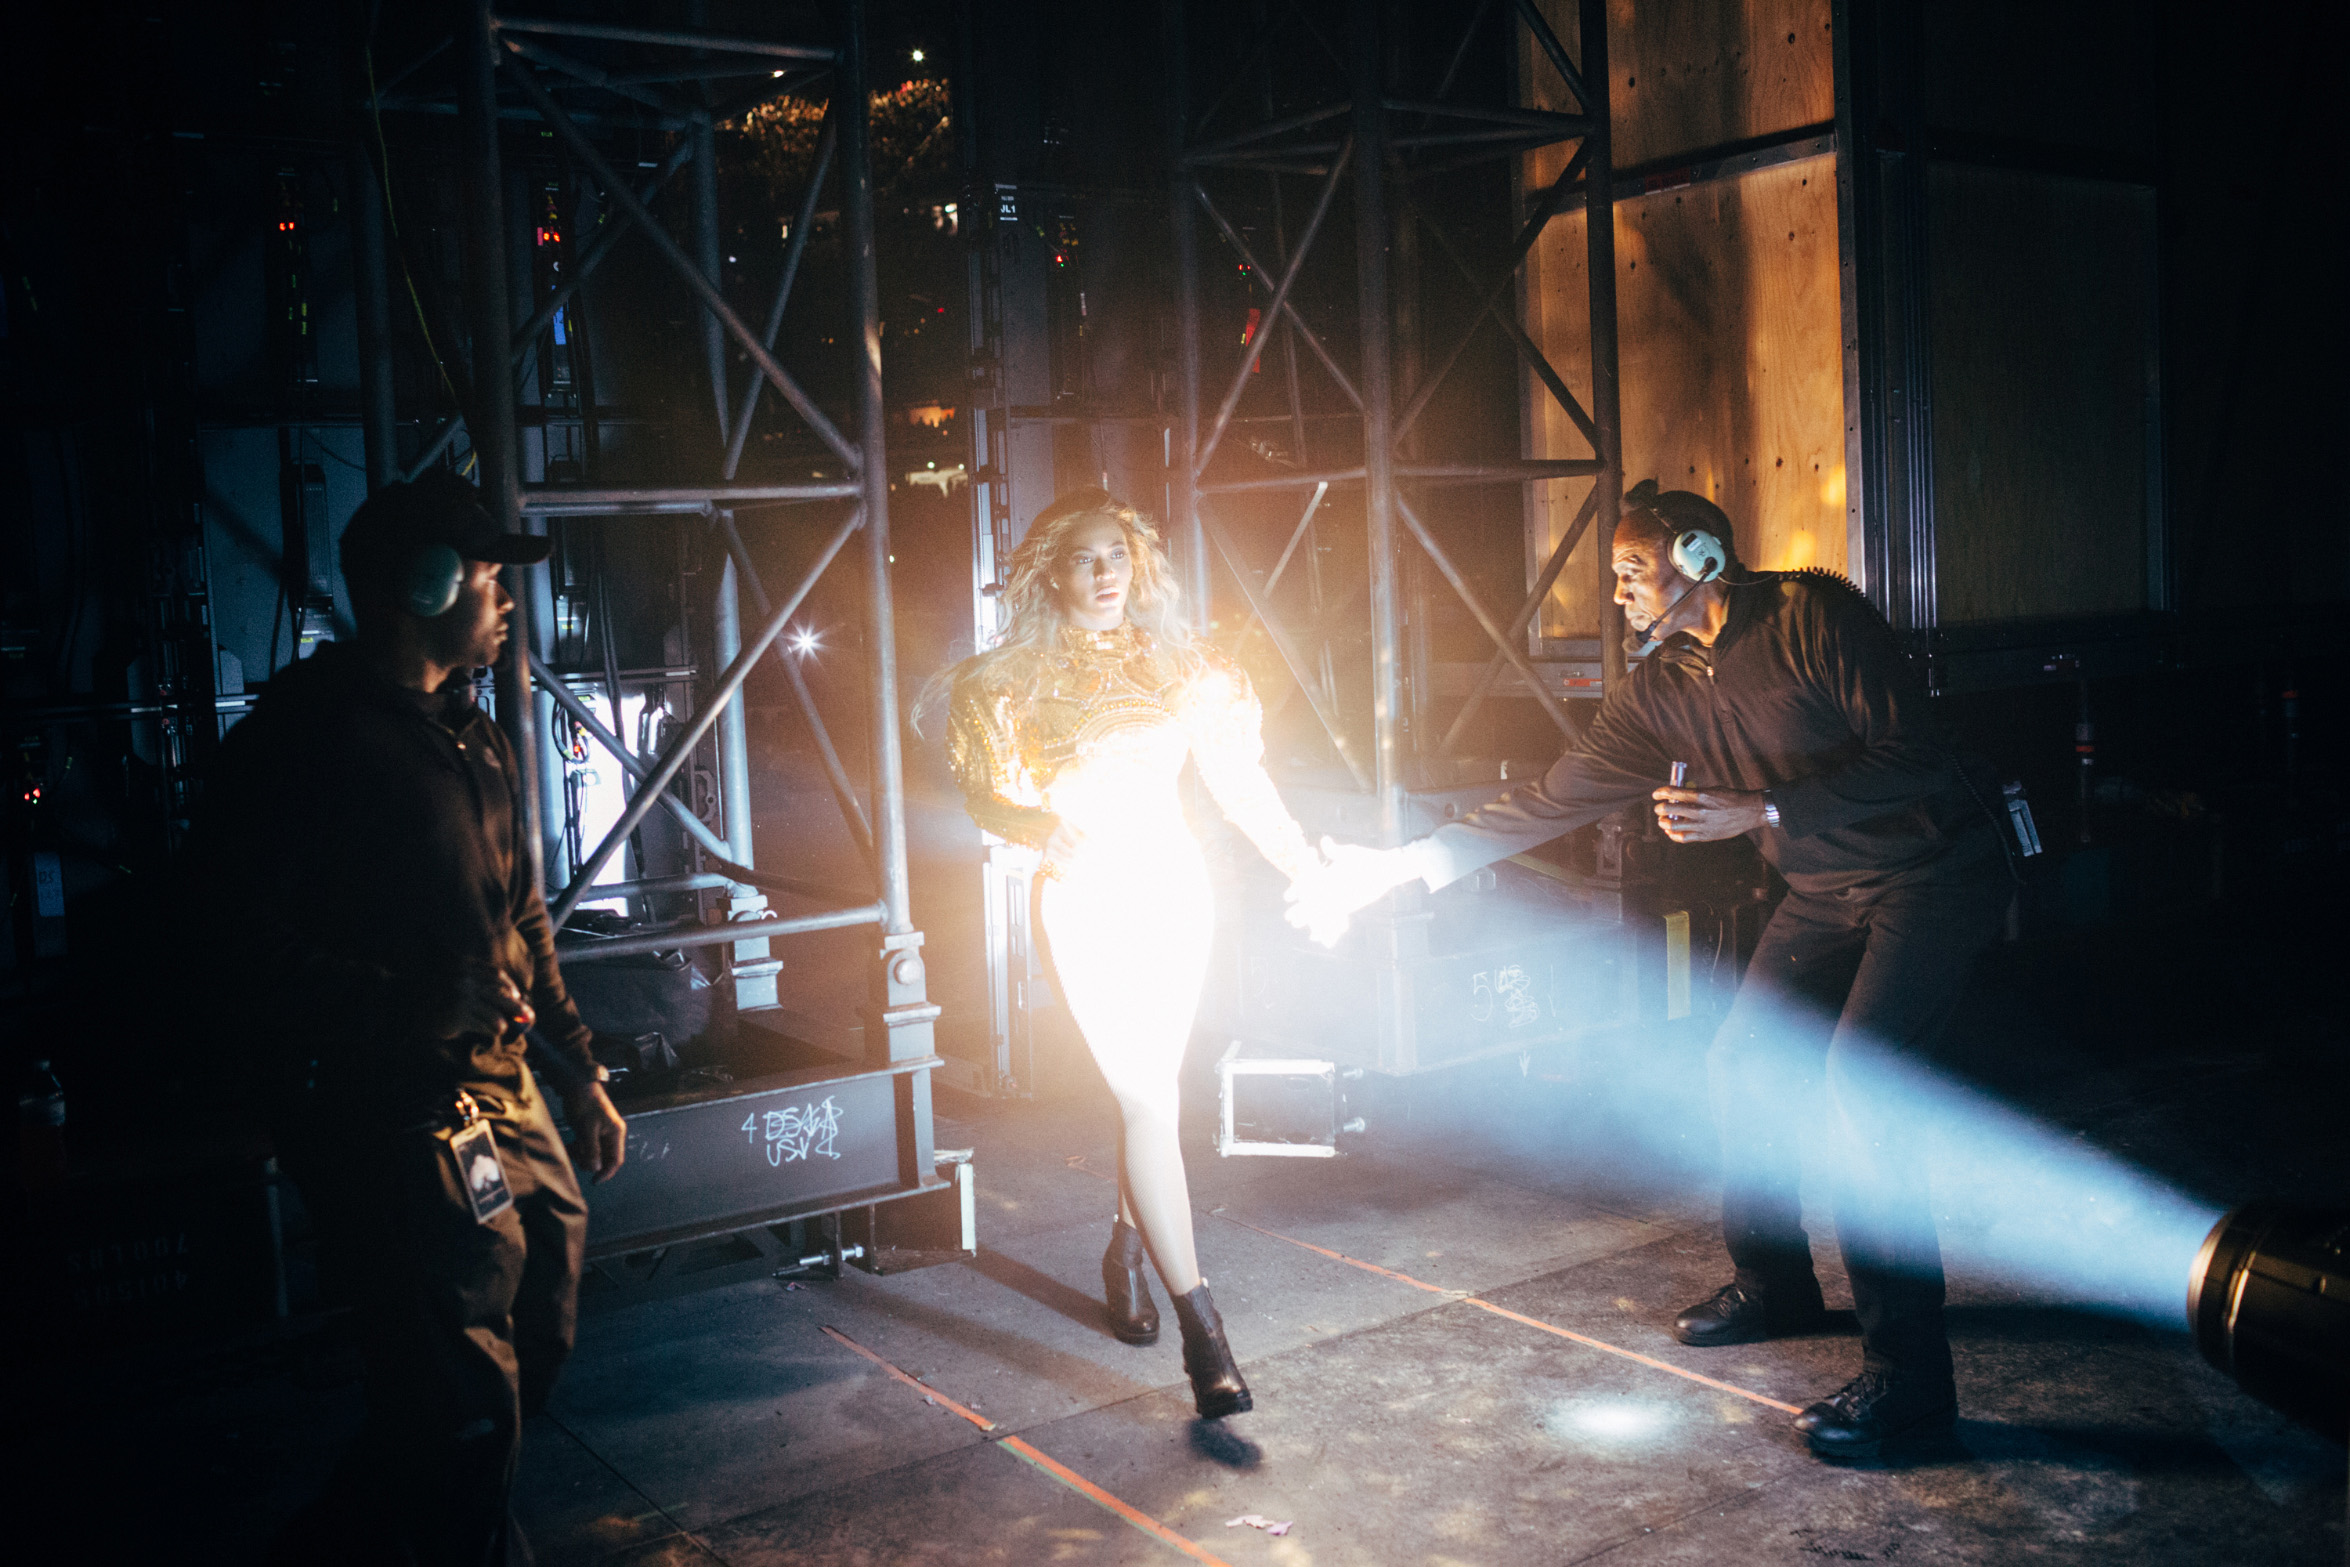 Backstage at Beyoncé's  Formation World Tour at Citi Field in New York City on June 7, 2016.